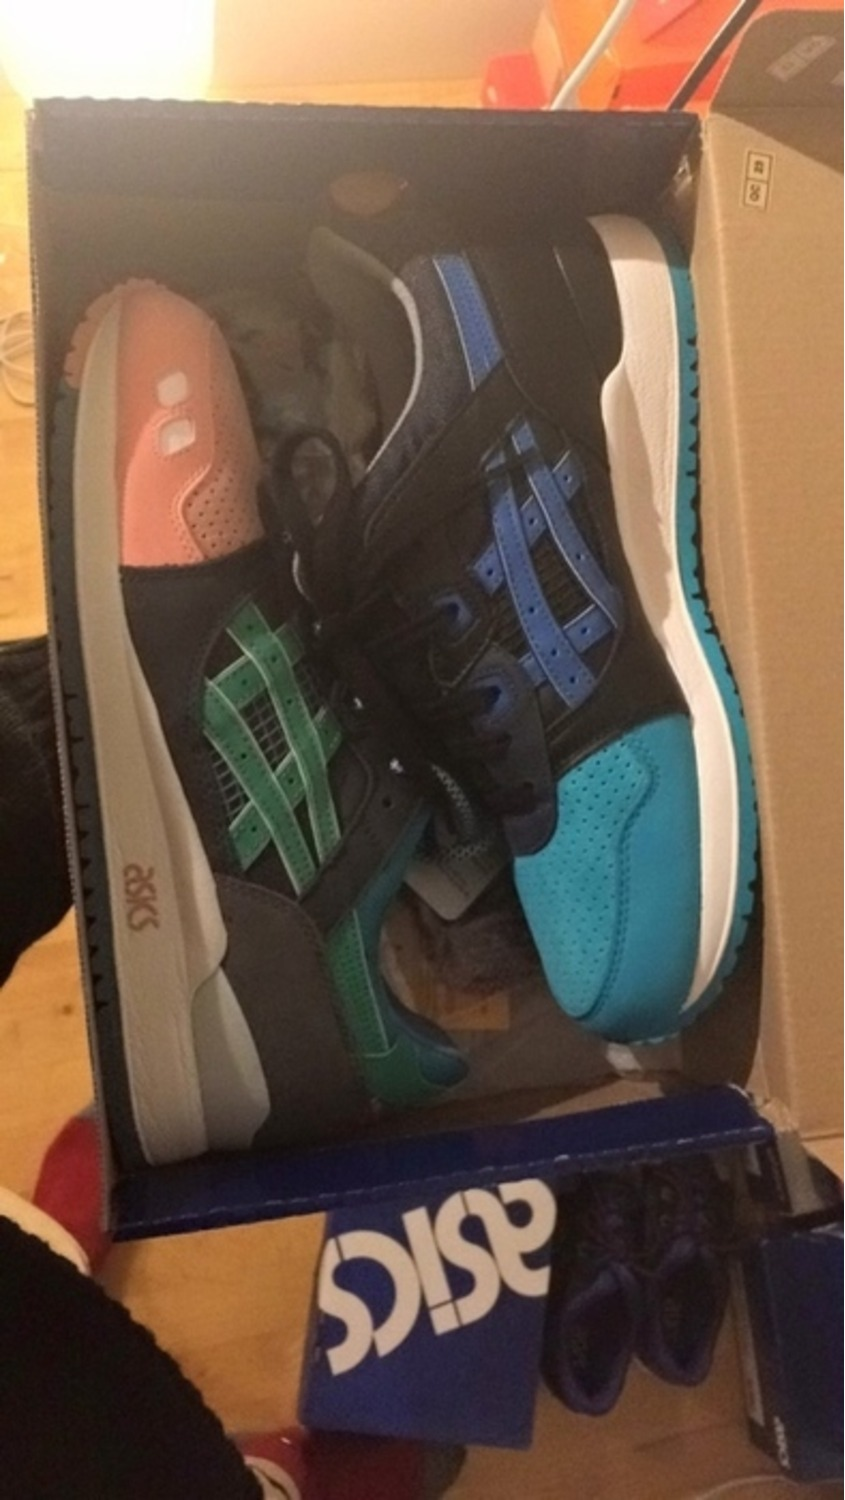 Asics GEL Lyte III x Ronnie Fieg 'Homage' US 10 - photo 1/1